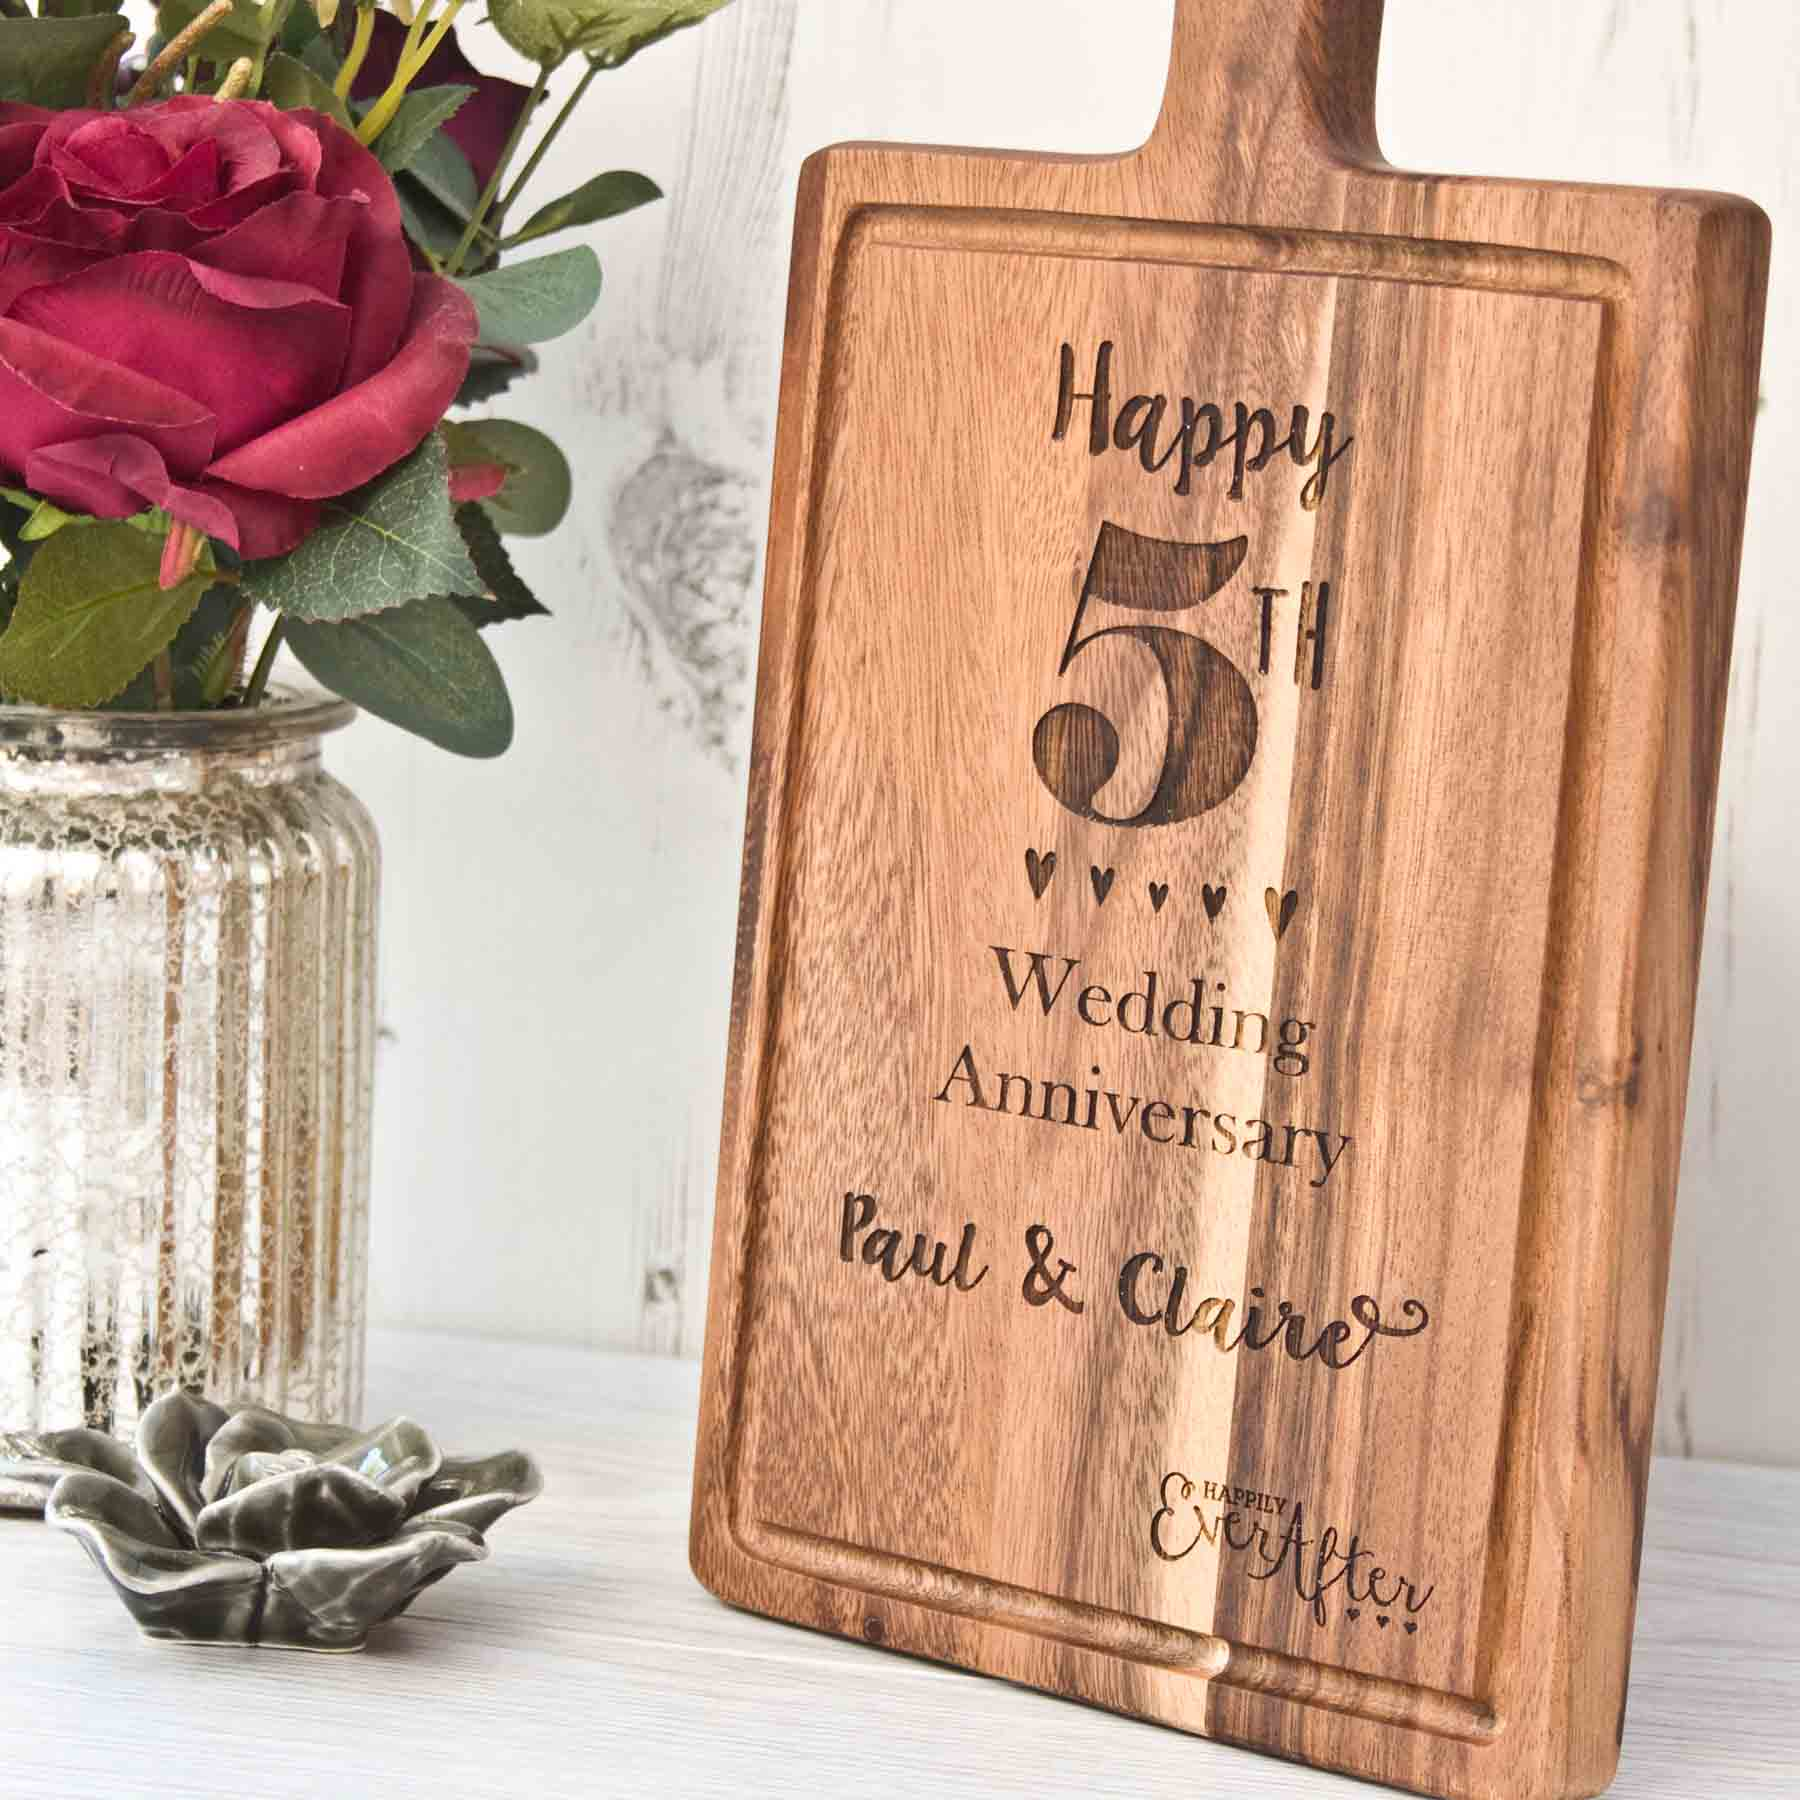 5th Year Wedding Anniversary Gift For Her : Wedding Anniversary 5th YearThe Laser Boutique